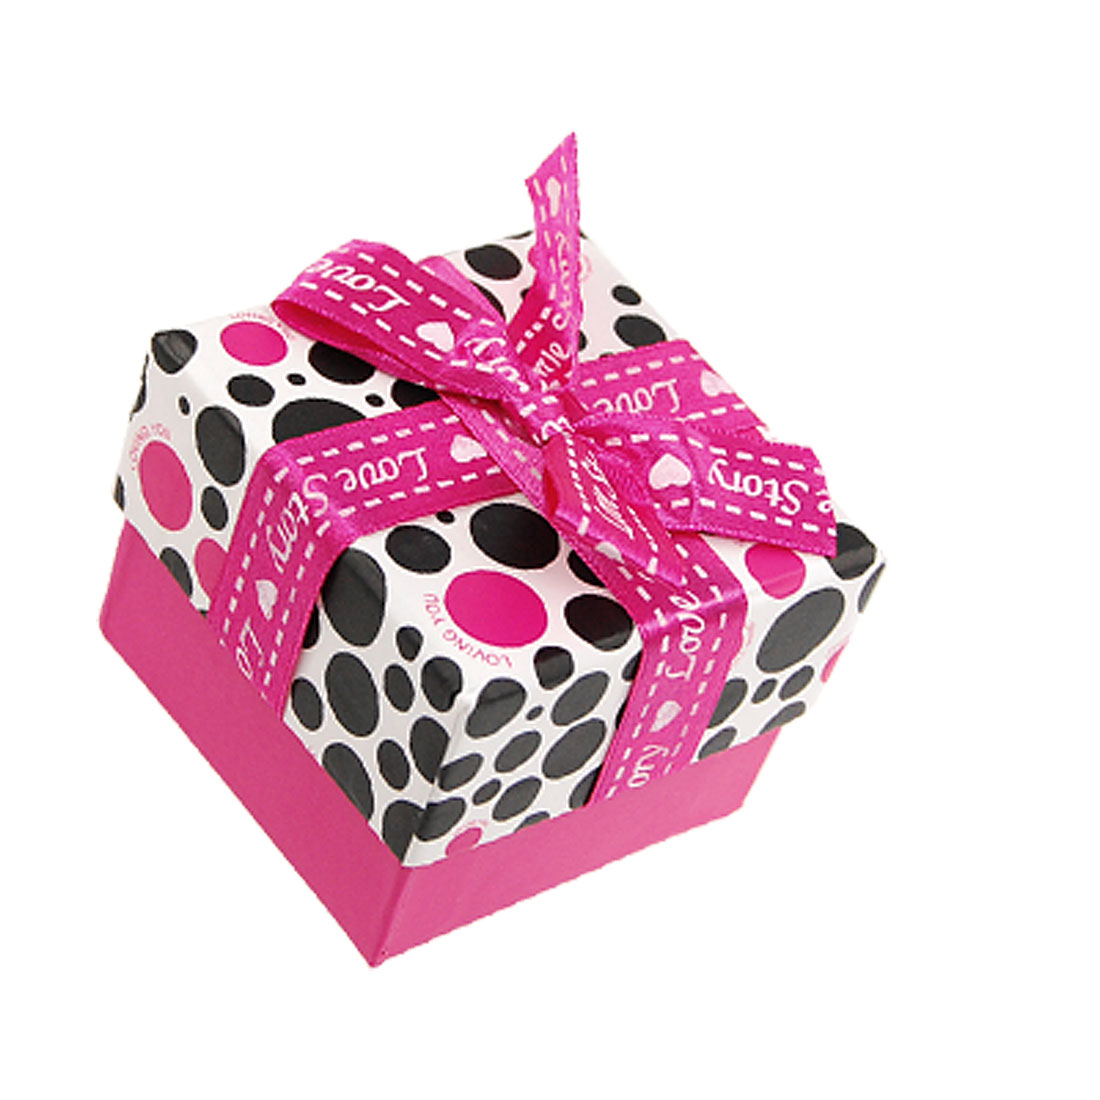 Fuchsia White Black Bowknot Accent Dotted Paper Square Gift Box for Jewelry